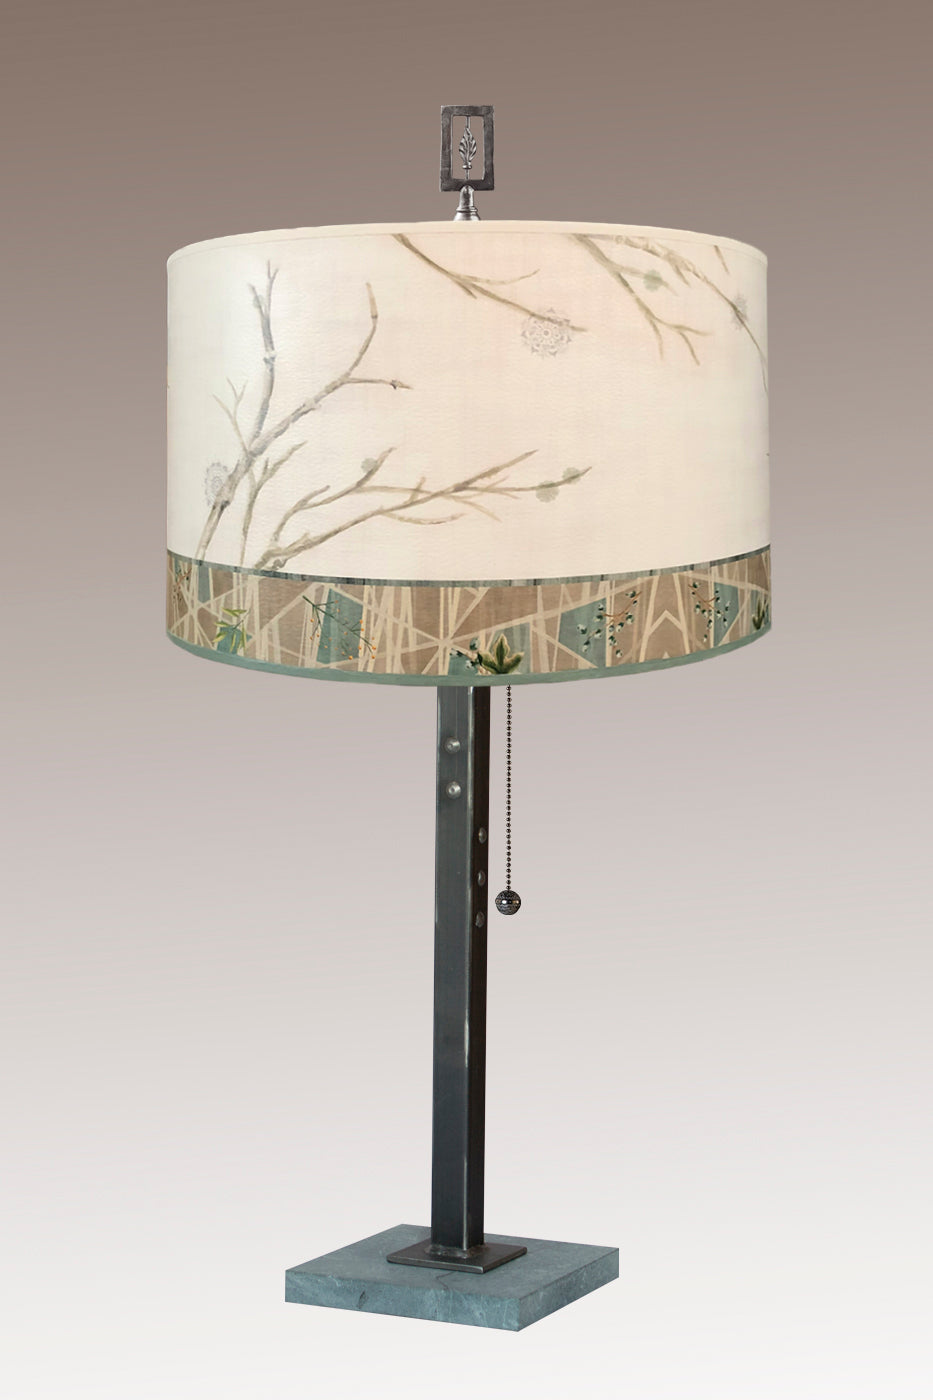 Steel Table Lamp on Marble with Large Drum Shade in Prism Branch